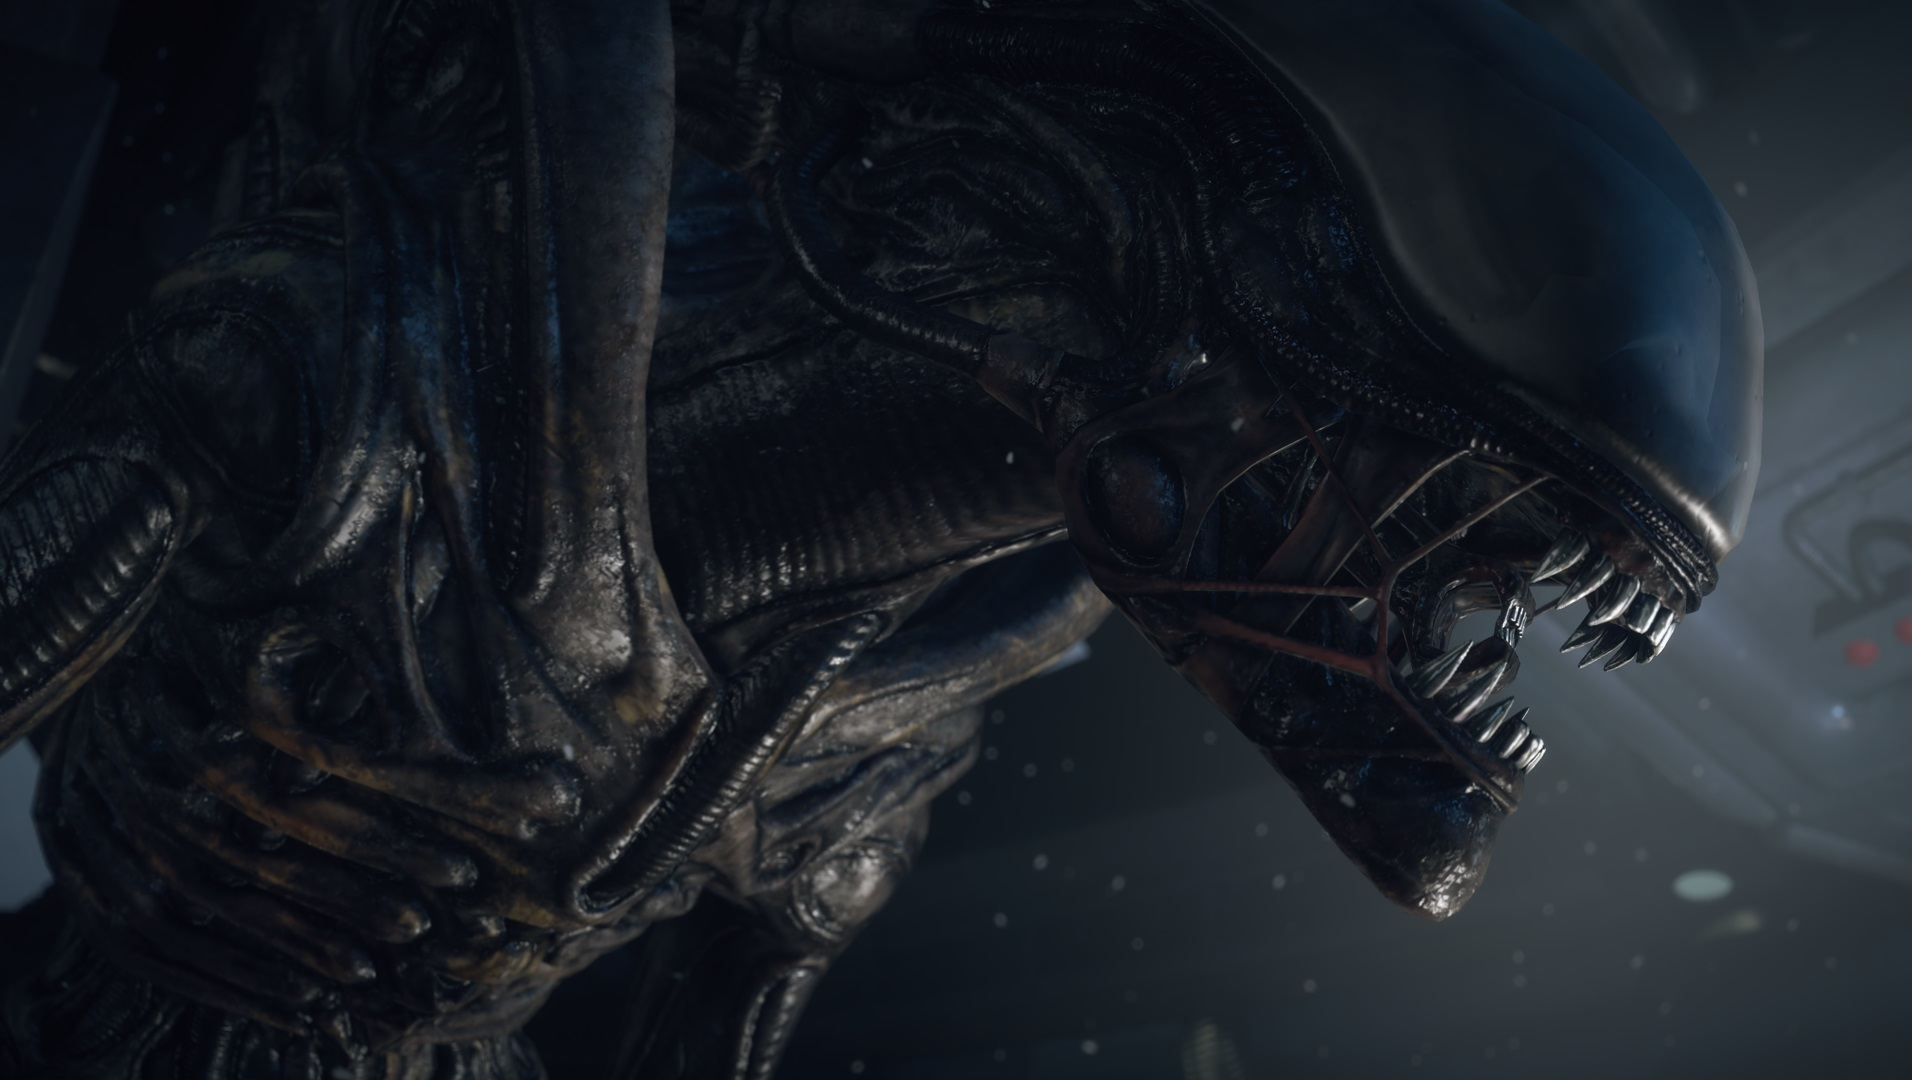 Forget Star Wars, where are the Alien games?